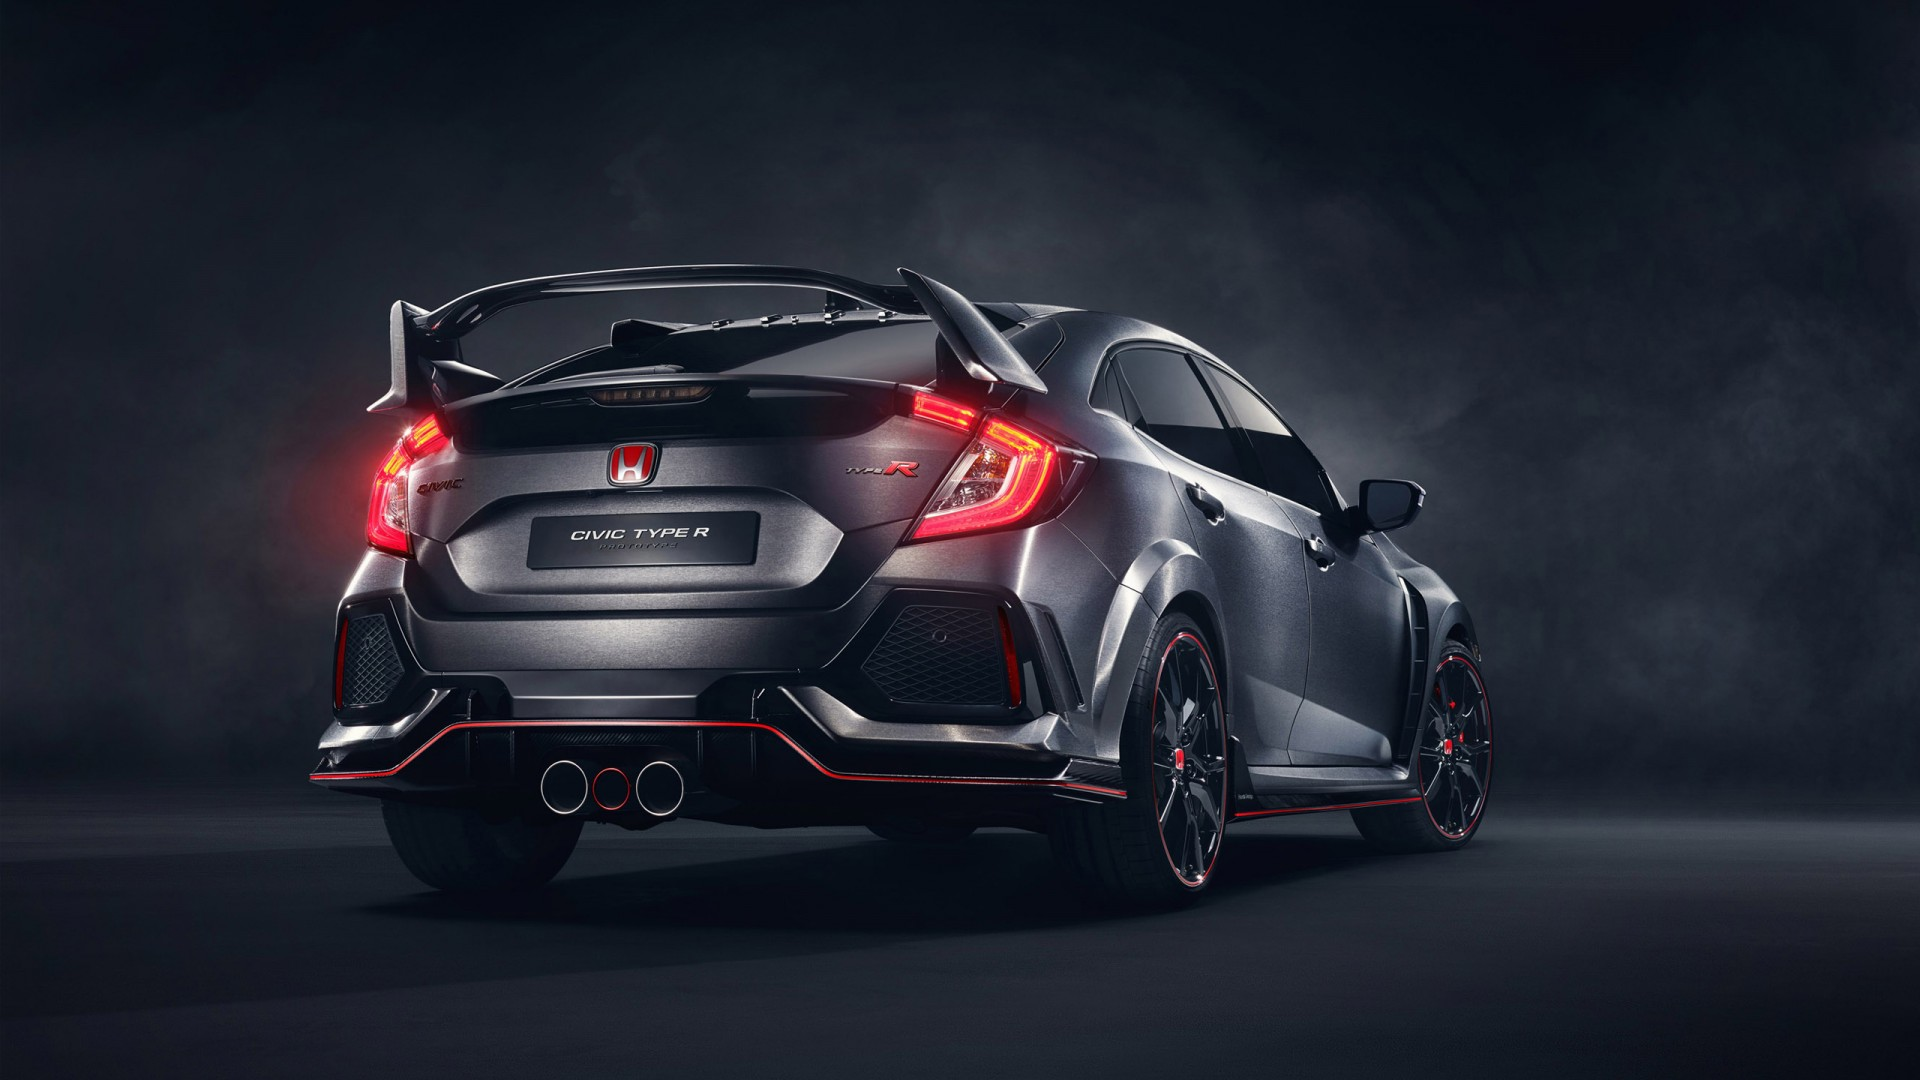 2017 honda civic type r 3 wallpaper hd car wallpapers. Black Bedroom Furniture Sets. Home Design Ideas